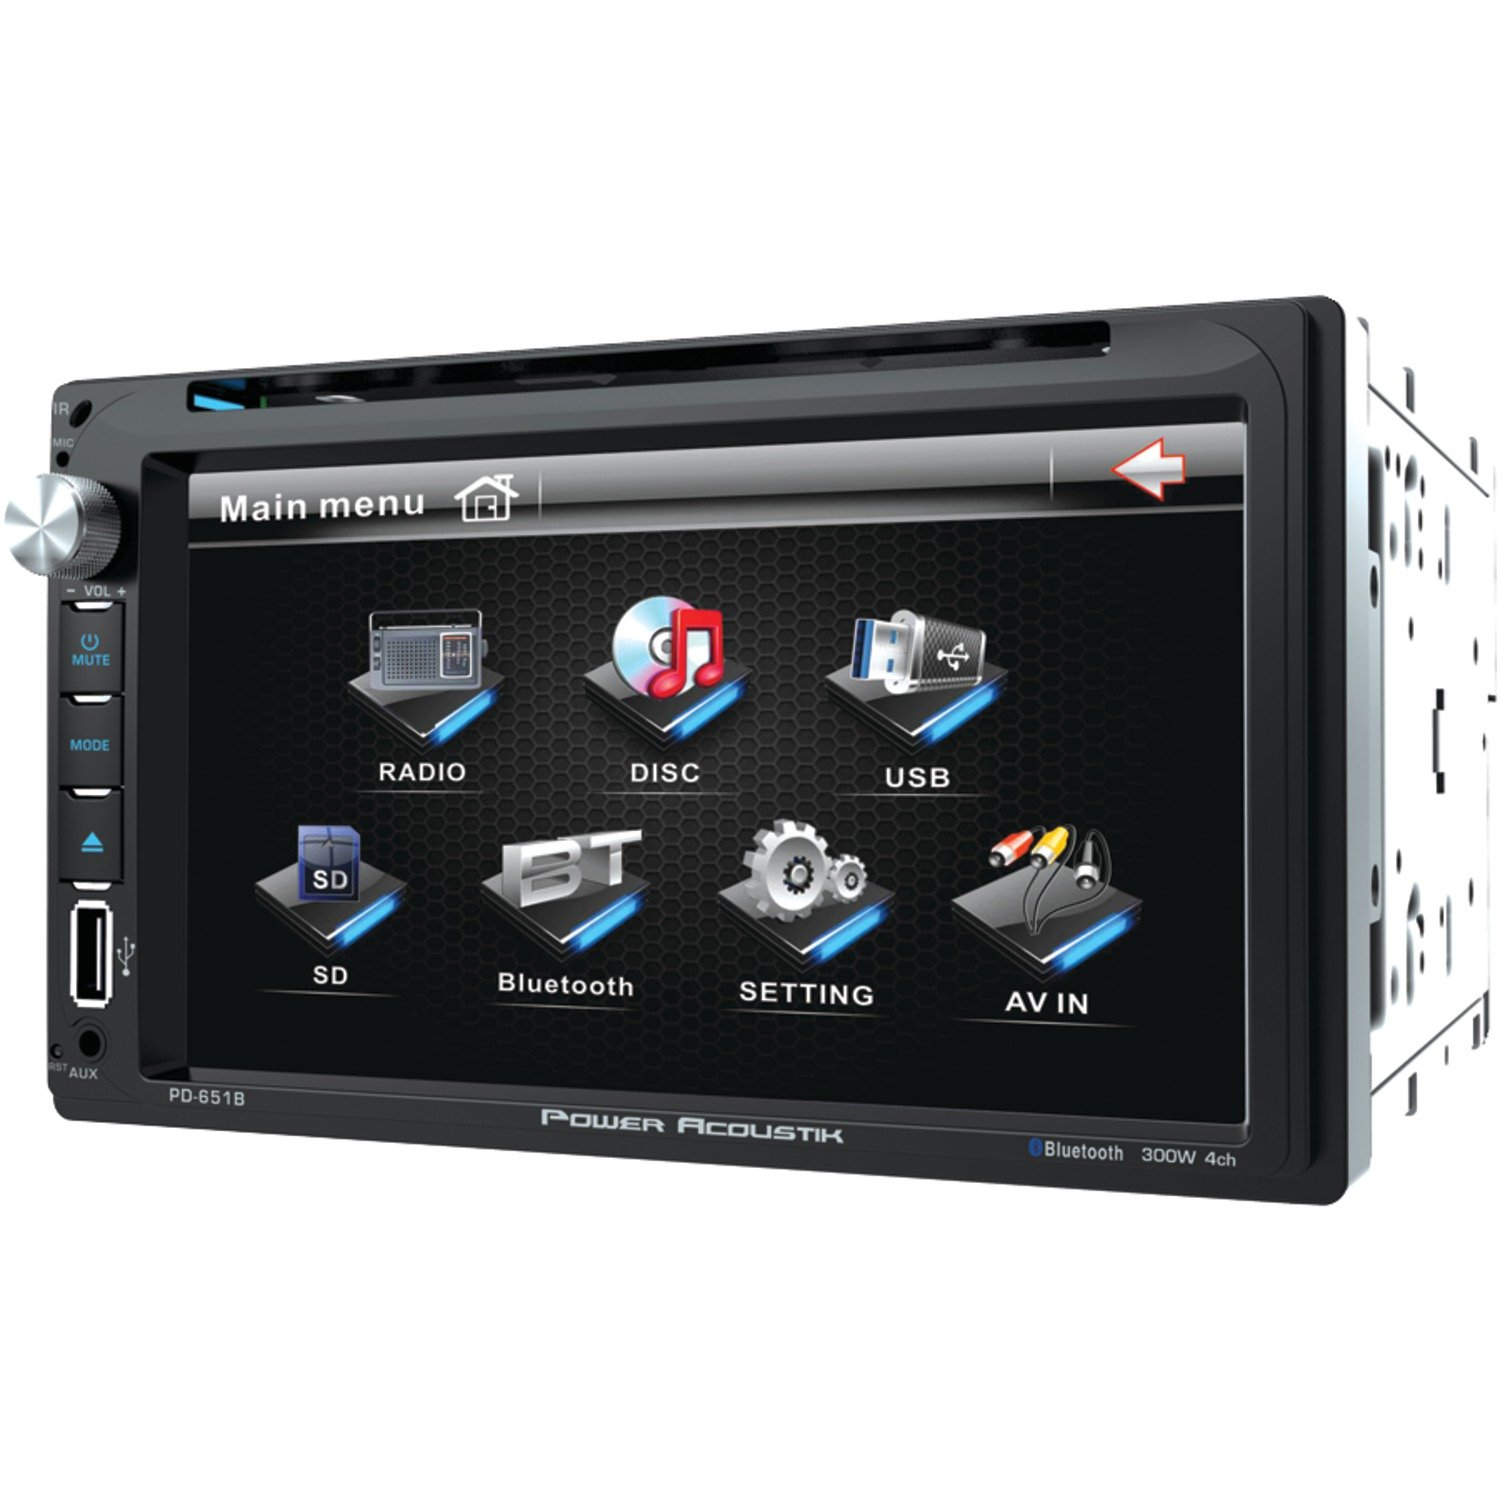 Power Acoustik PD 651B 6.5'' Double-DIN in-Dash LCD Touchscreen DVD Receiver with Bluetooth by Power Acoustik